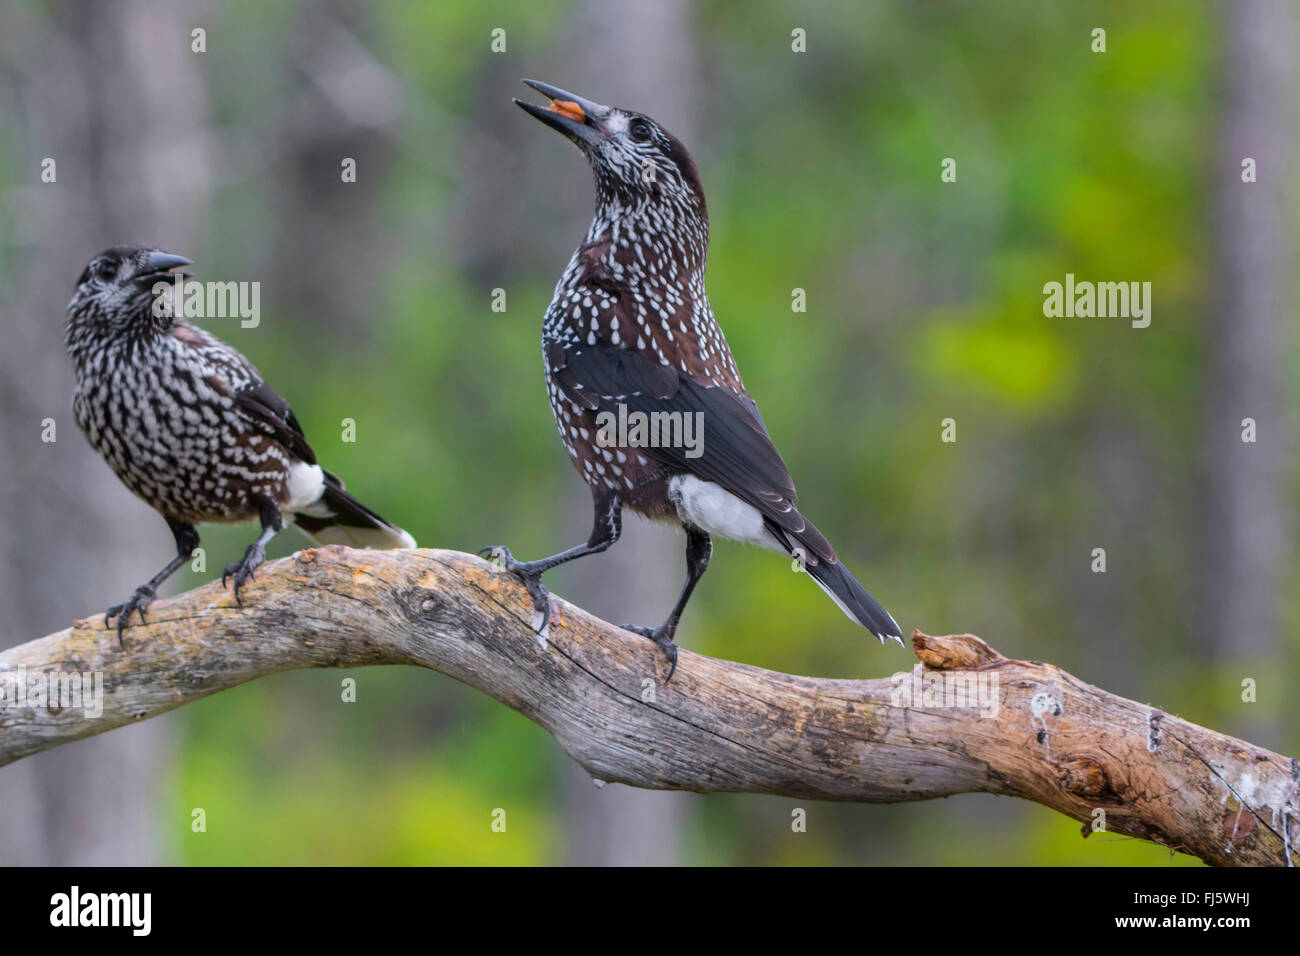 spotted nutcracker (Nucifraga caryocatactes), two spotted nutcrackers on a branch on the feed, Norway, Trondheim - Stock Image